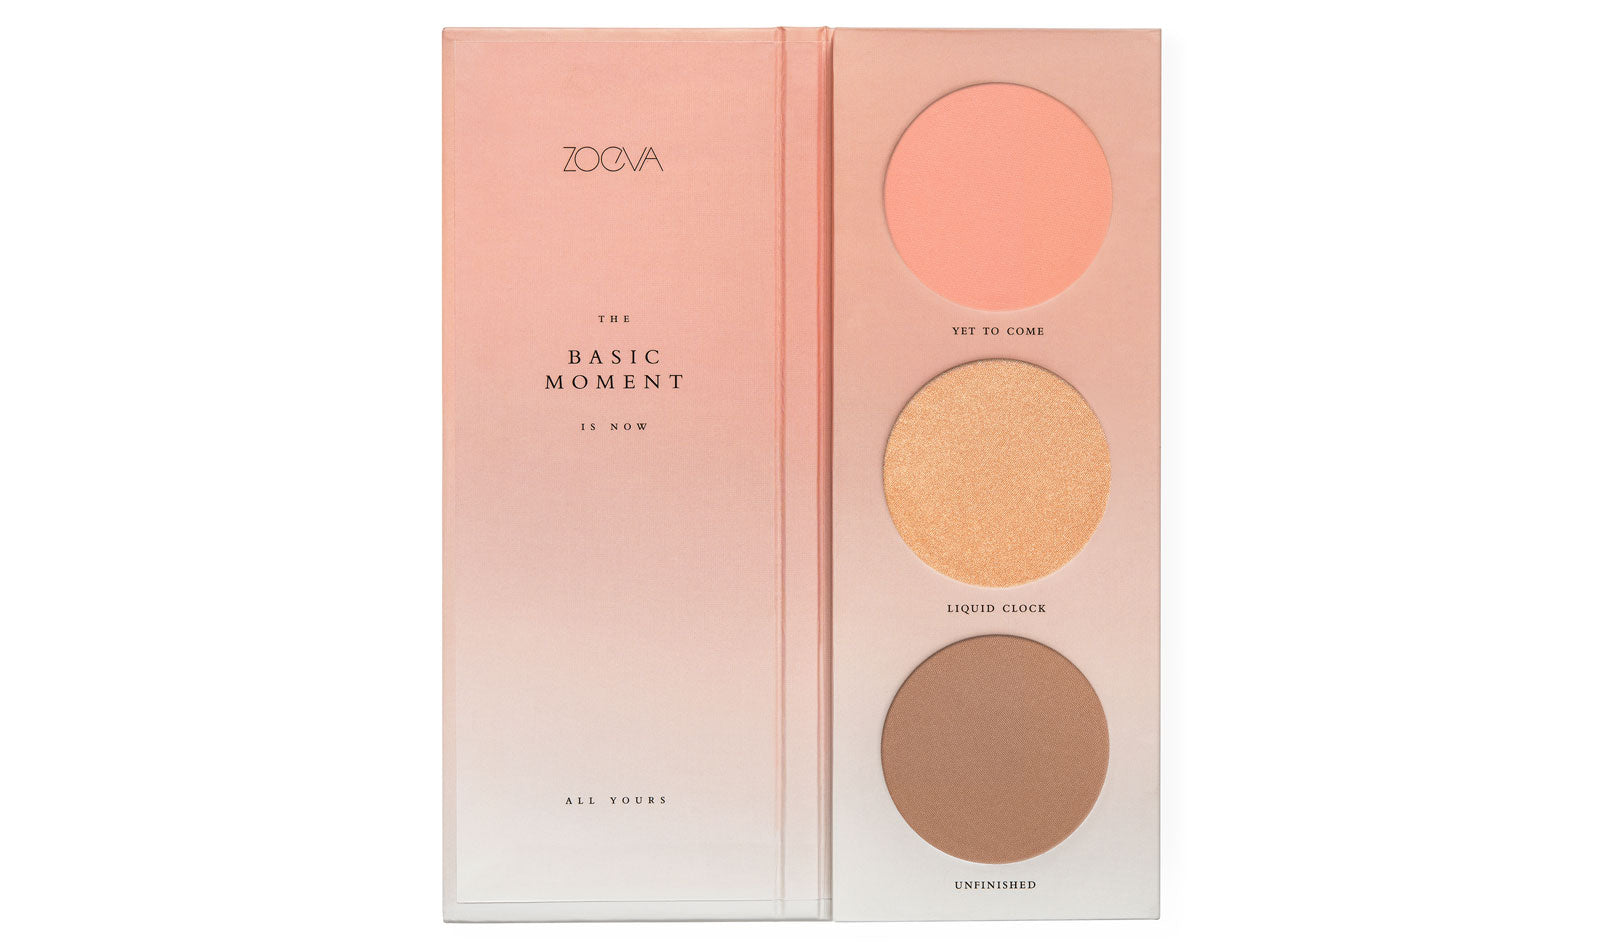 THE BASIC MOMENT (BLUSH PALETTE)